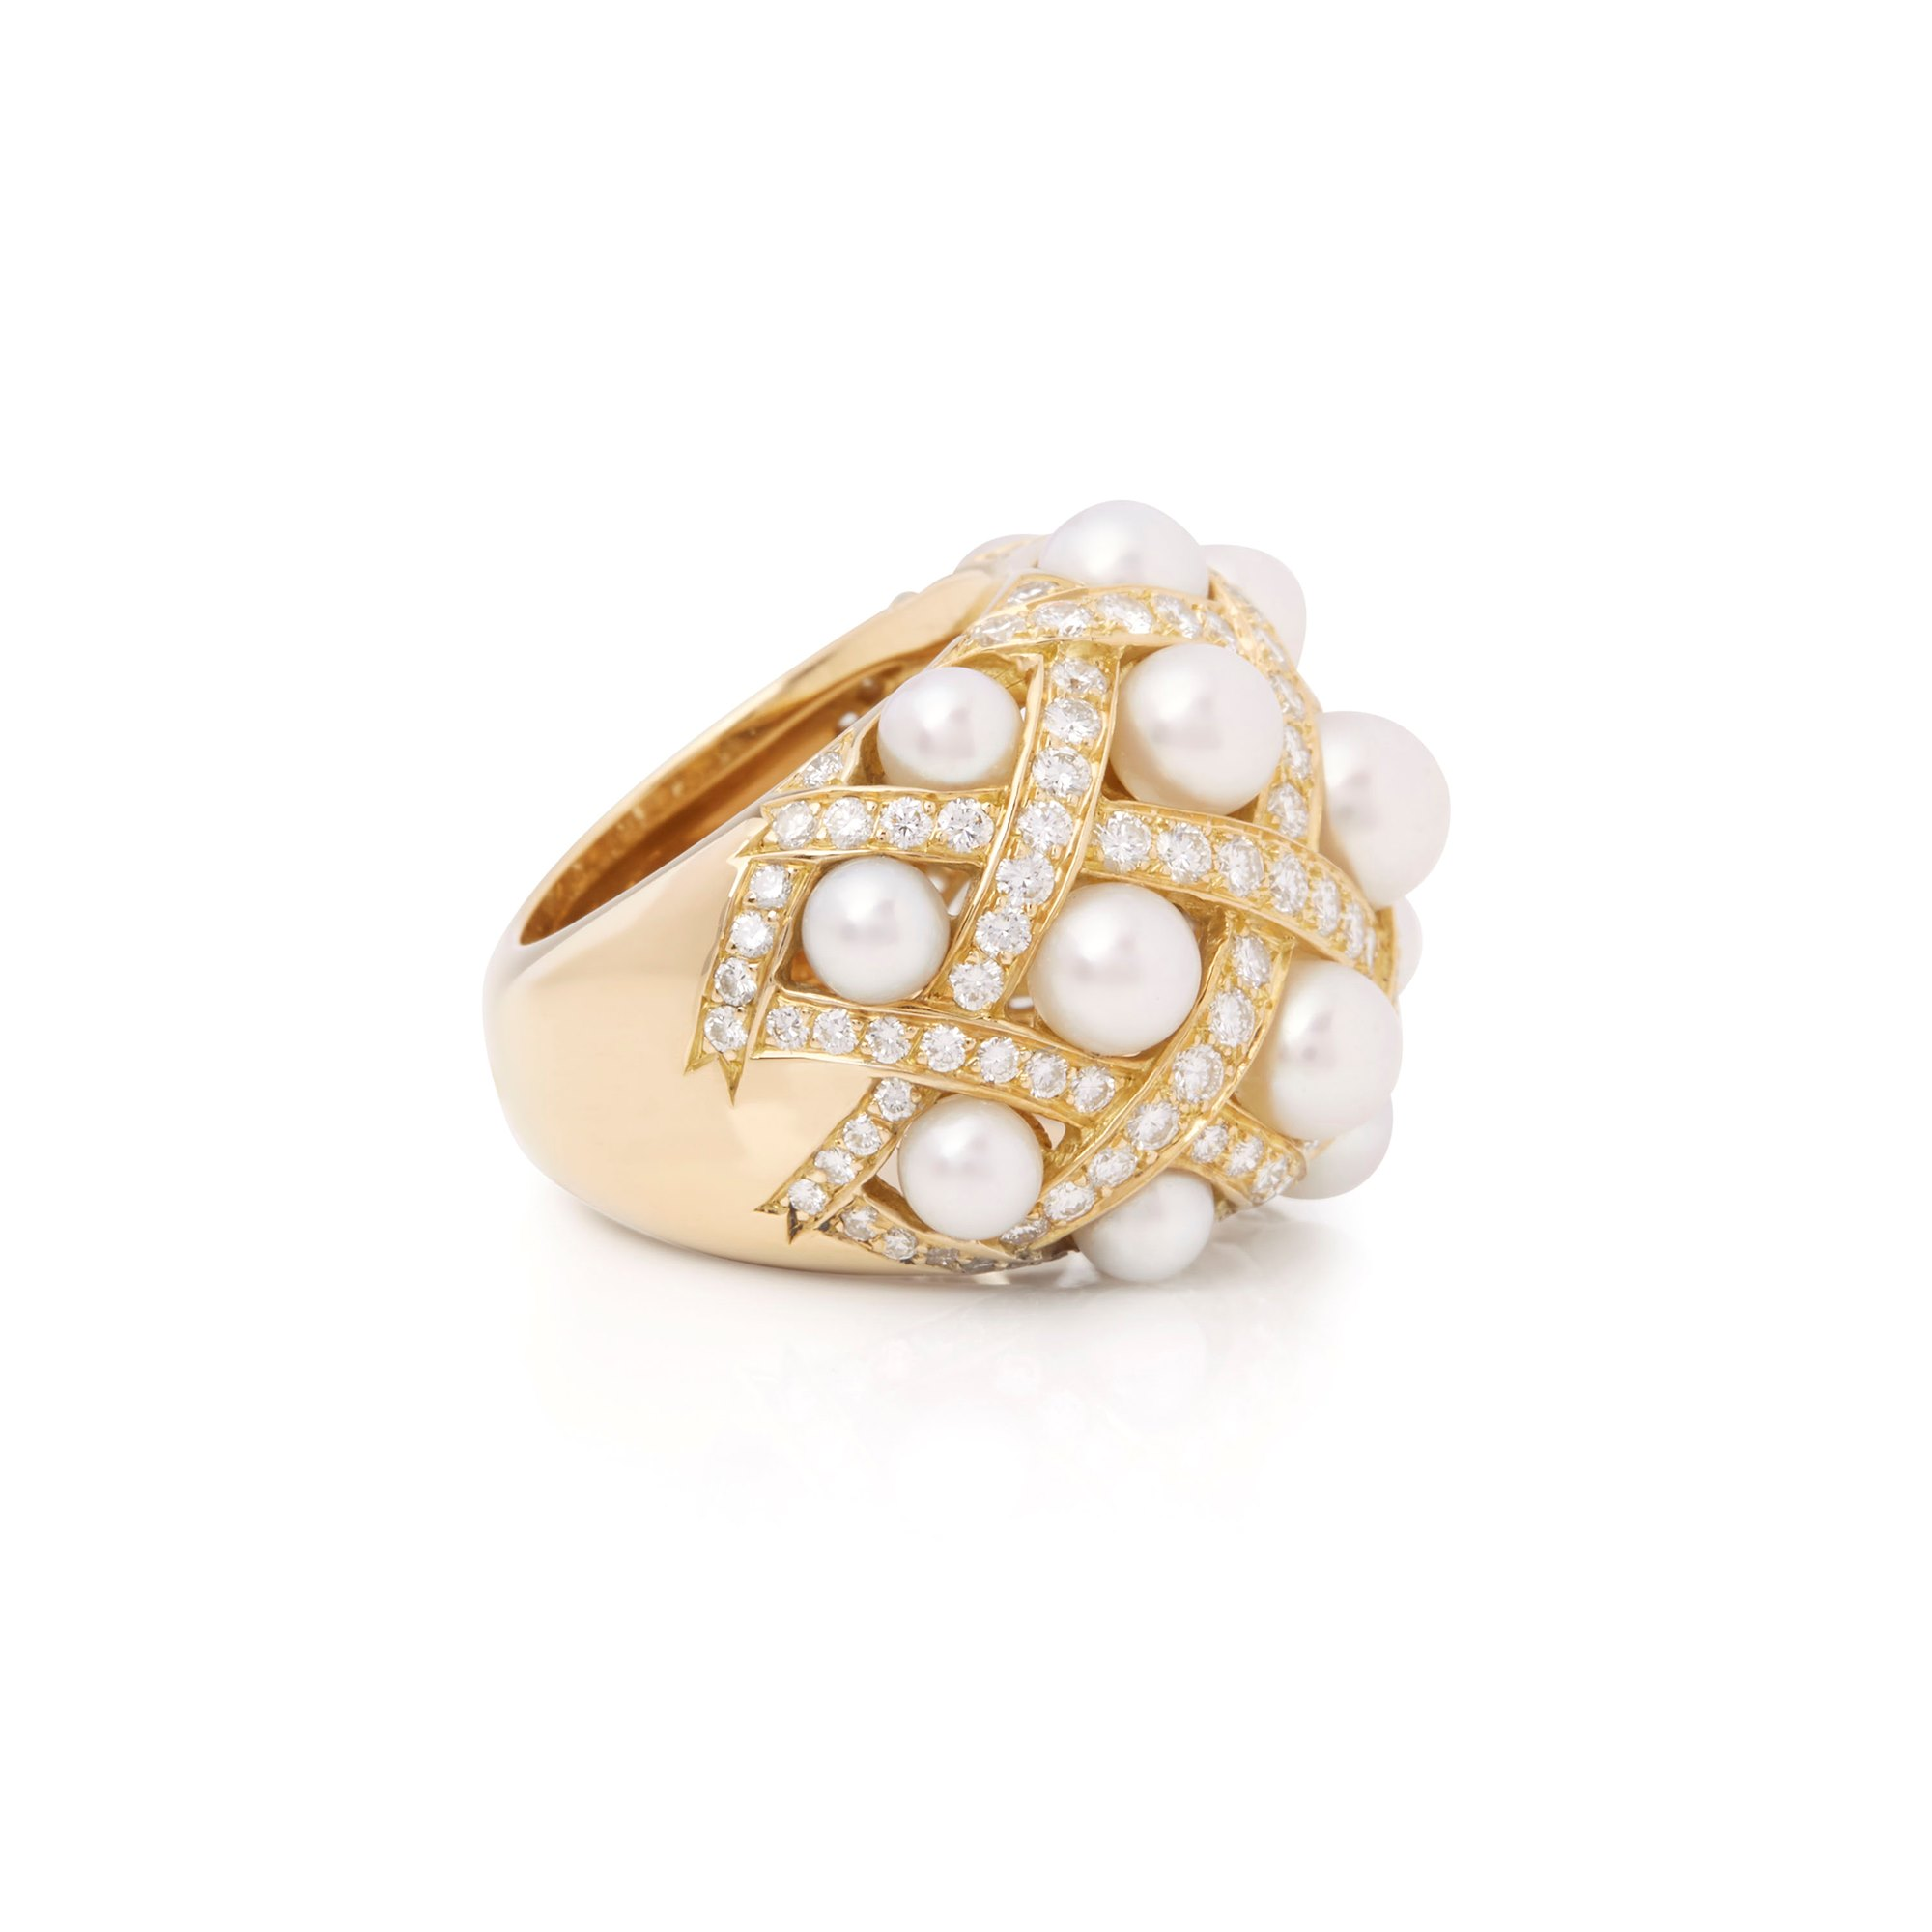 Chanel 18k Yellow Gold Cultured Pearl Baroque Matelassé Ring